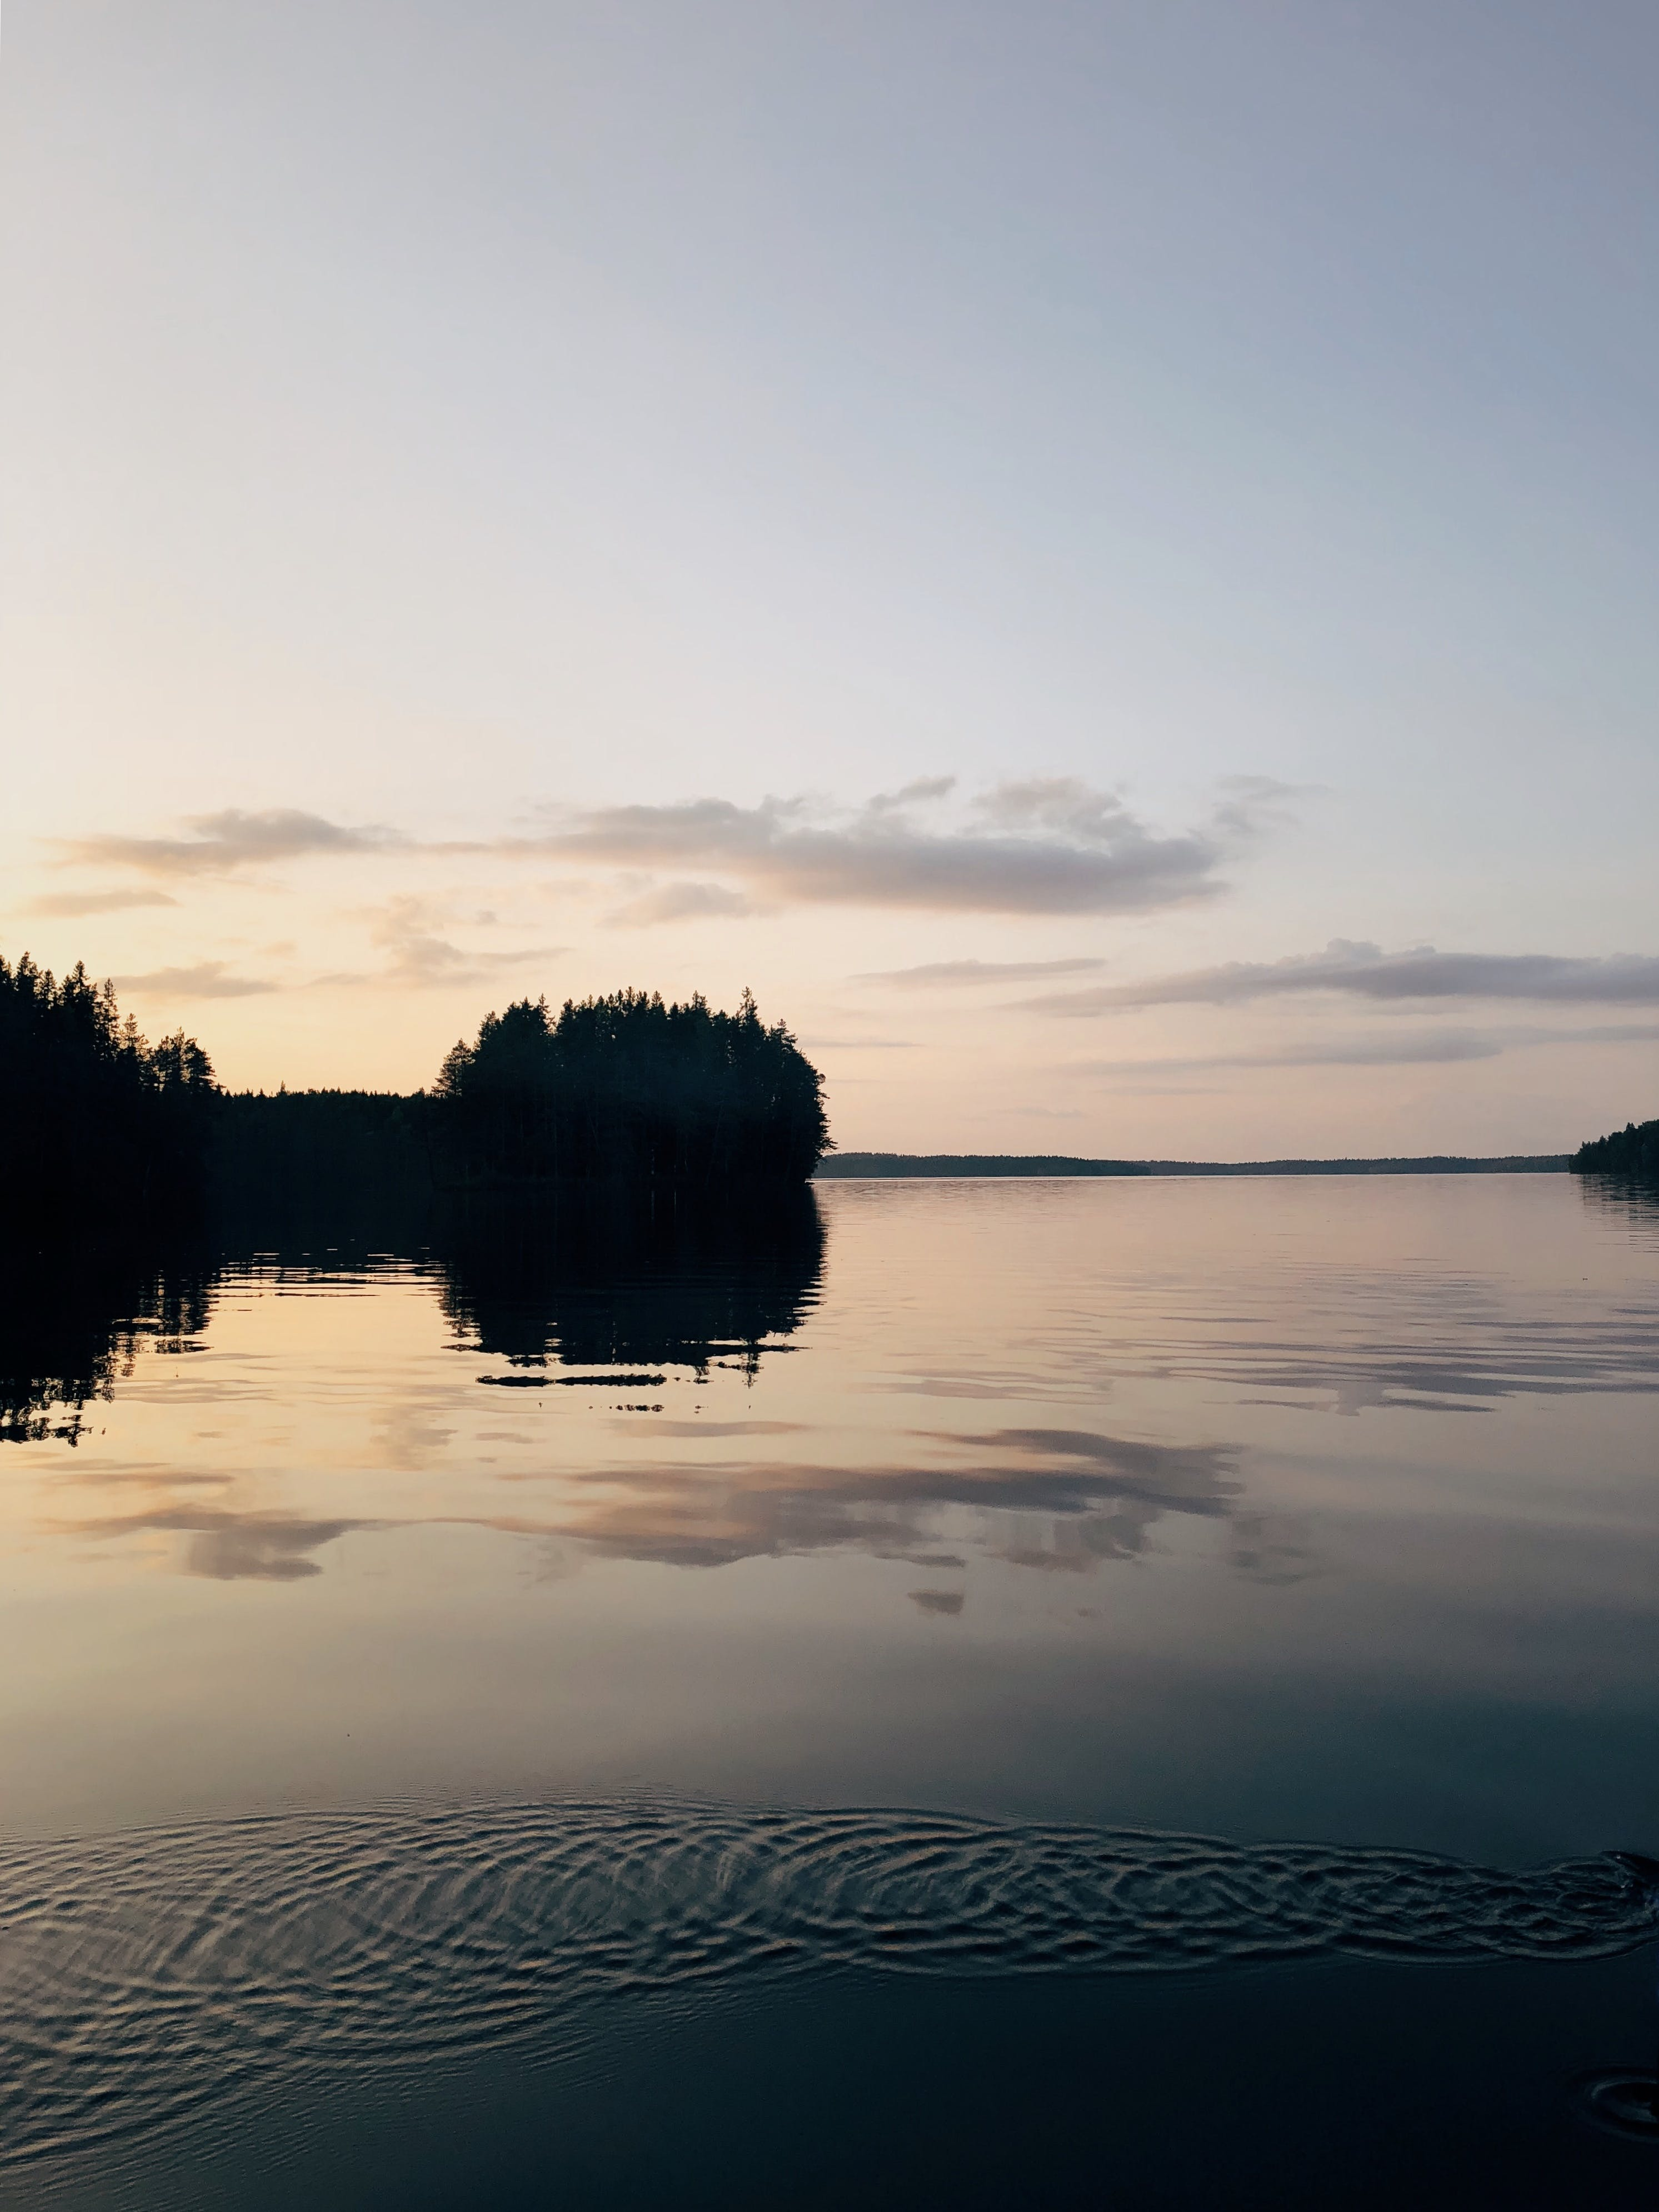 Scenic View of Lake During Dusk